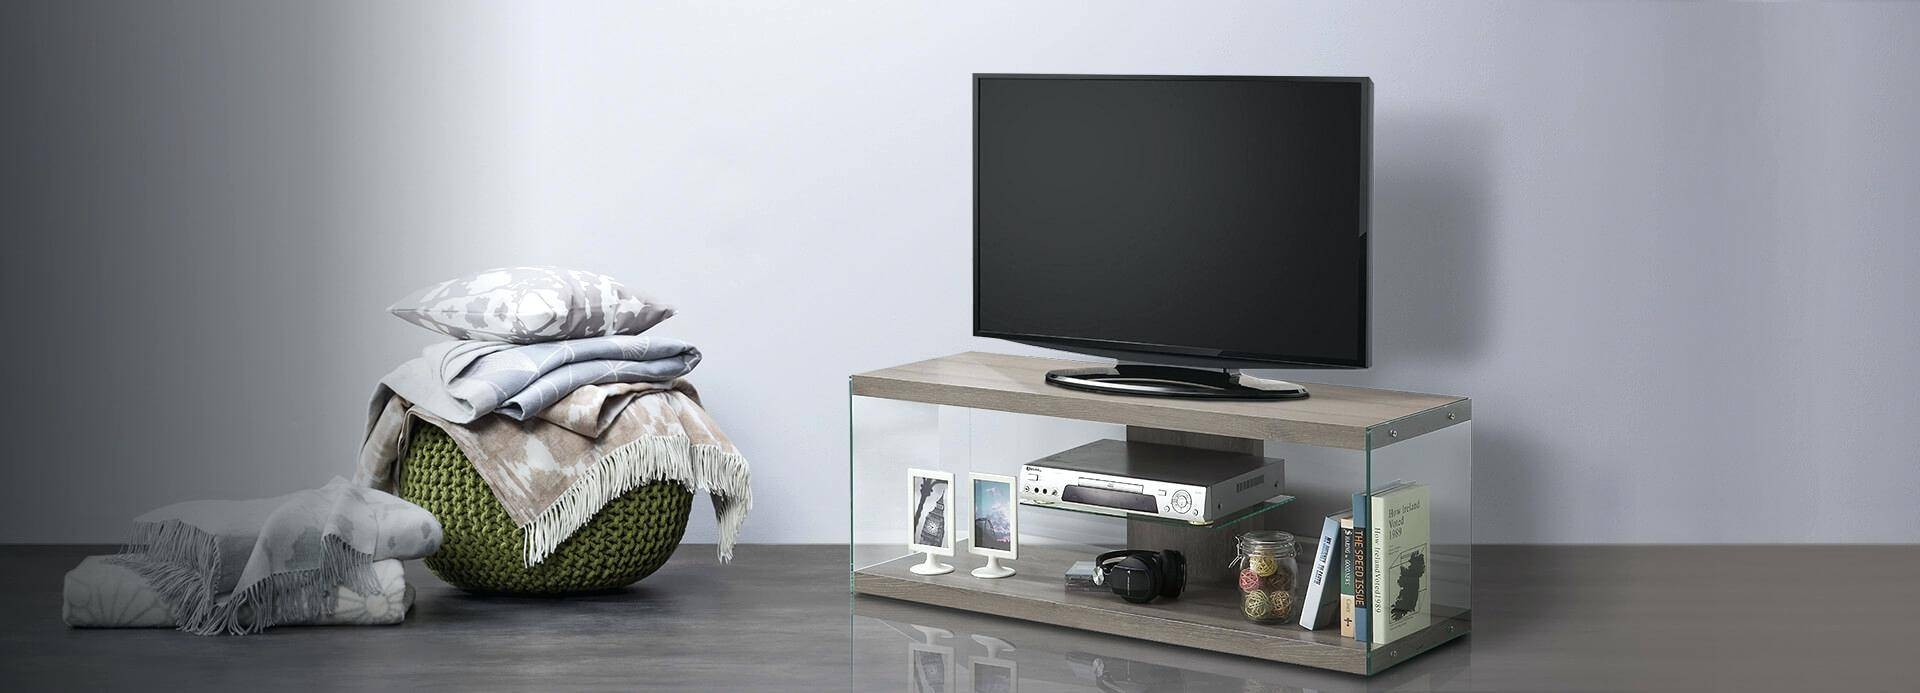 Articles With Acrylic Tv Stand Tag: Excellent Acrylic Tv Stand For with Clear Acrylic Tv Stands (Image 2 of 15)